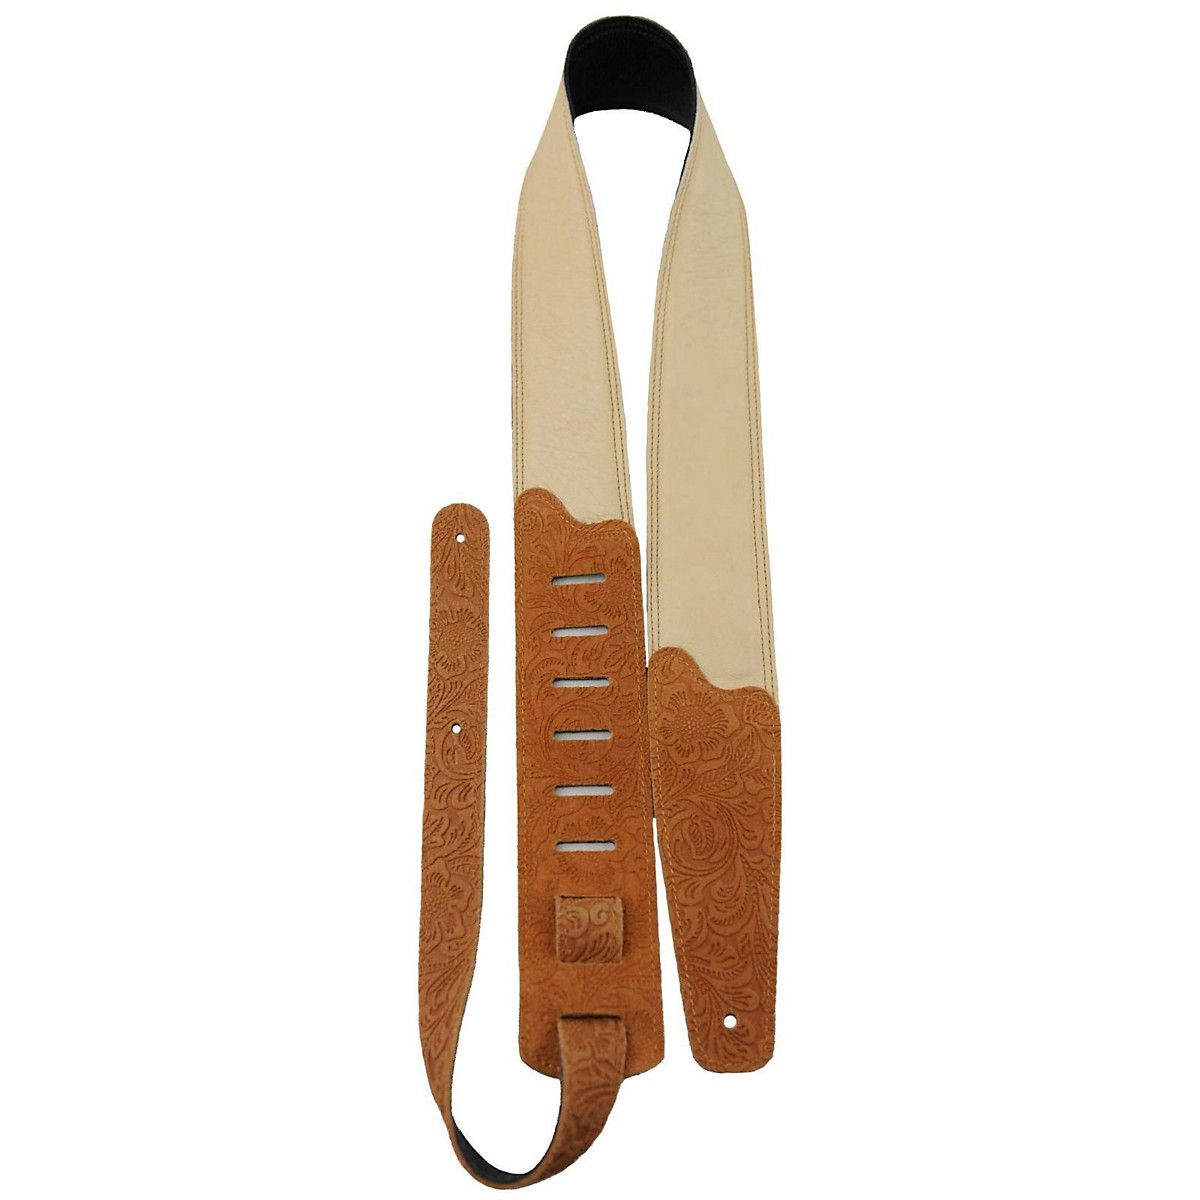 Perri's Soft Garment Leather Padded Embossed Floral Pattern Guitar Strap